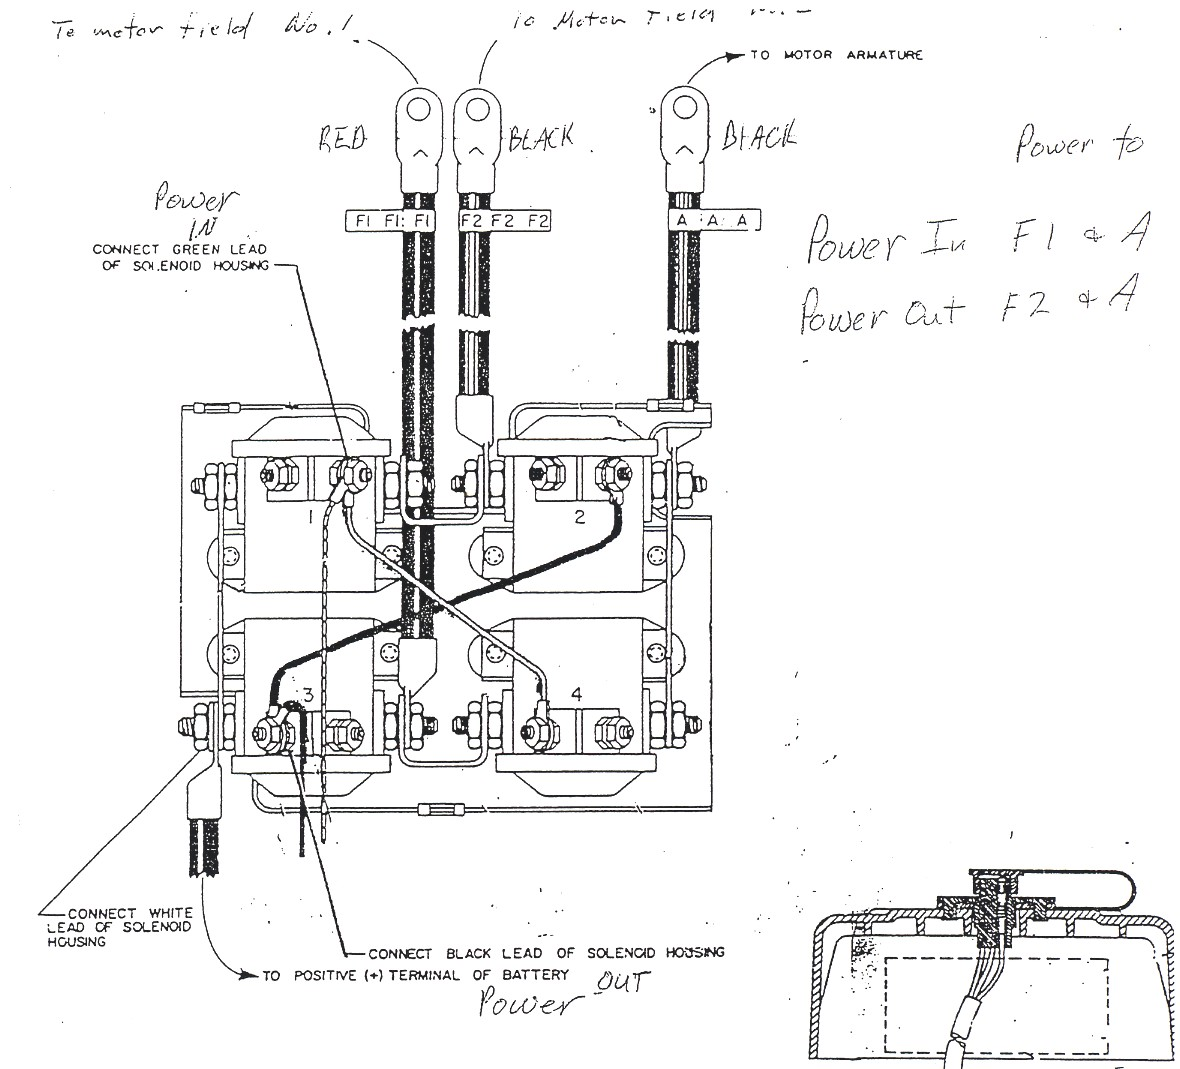 Warn Vr12000 Wiring Diagram Warn 8274 Diagram Wiring